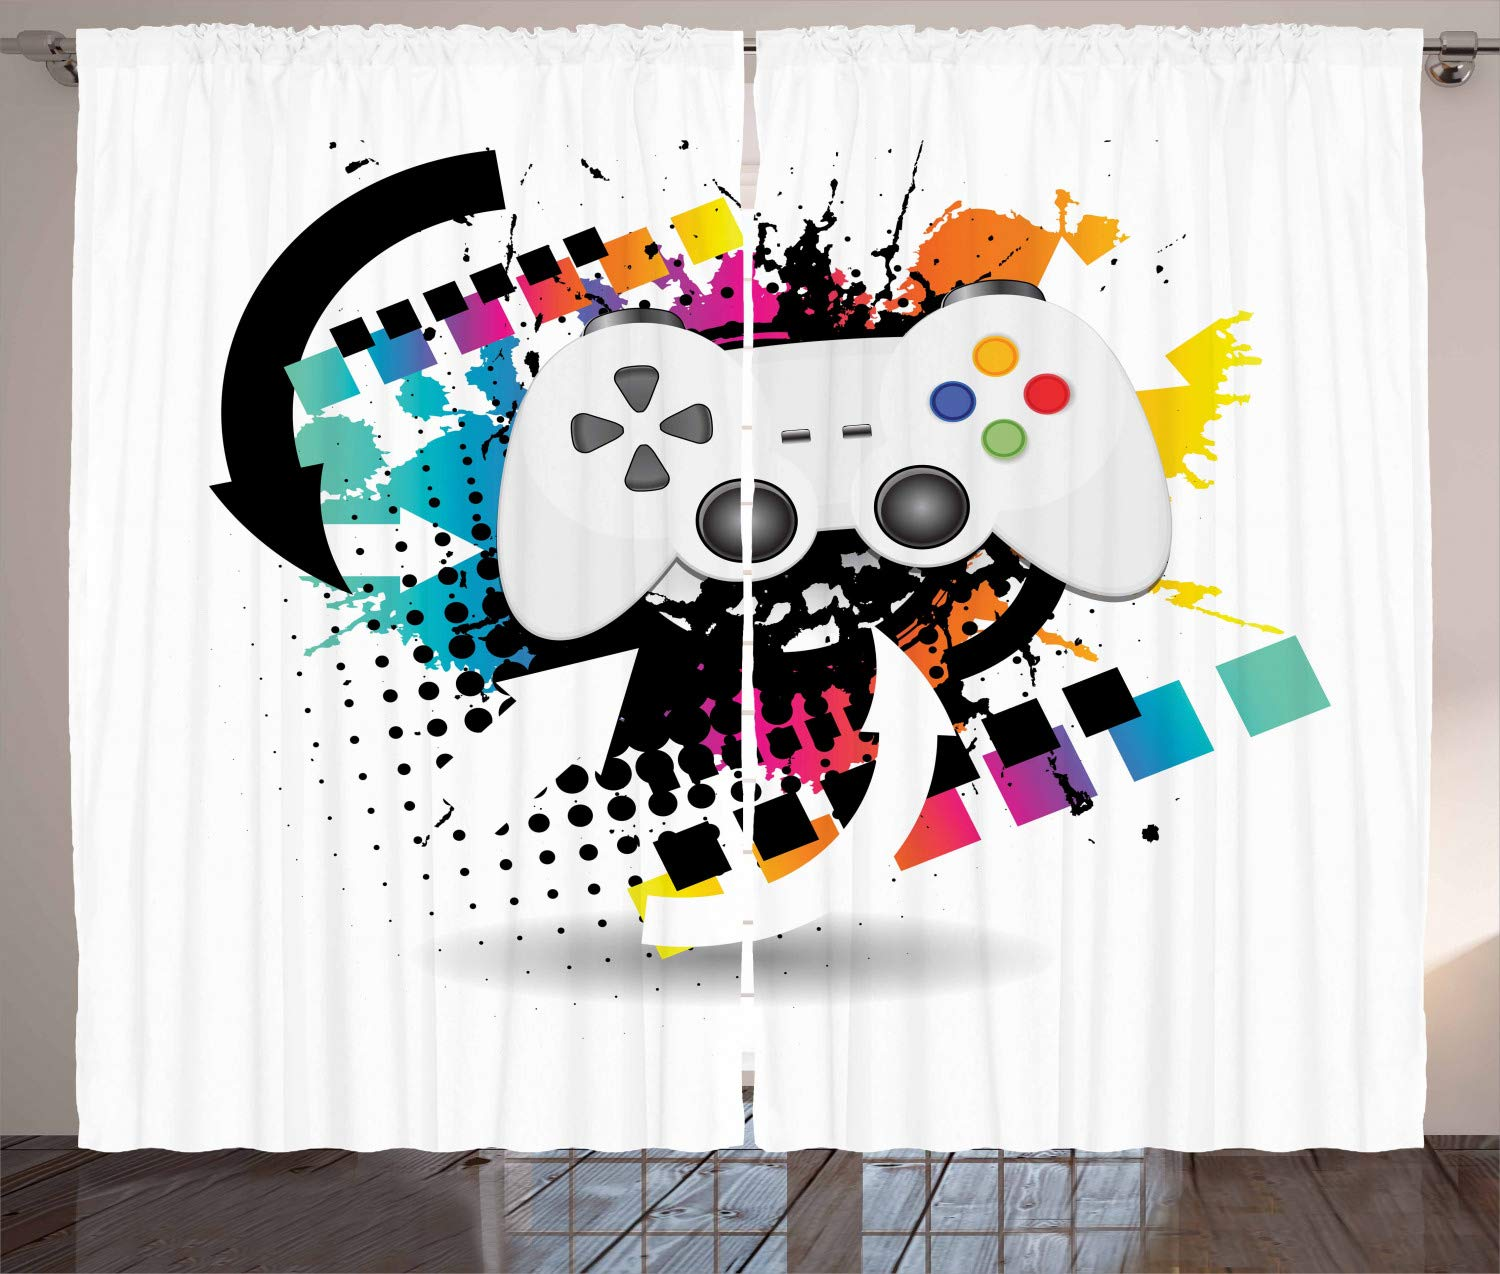 108 W X 108 L Inches Extreme Sports Depicting Silhouettes with Vibrant Colors Surfing Bmxing Snowboarding Living Room Bedroom Window Drapes 2 Panel Set Lunarable Sports Curtains Multicolor p/_45160/_108x108